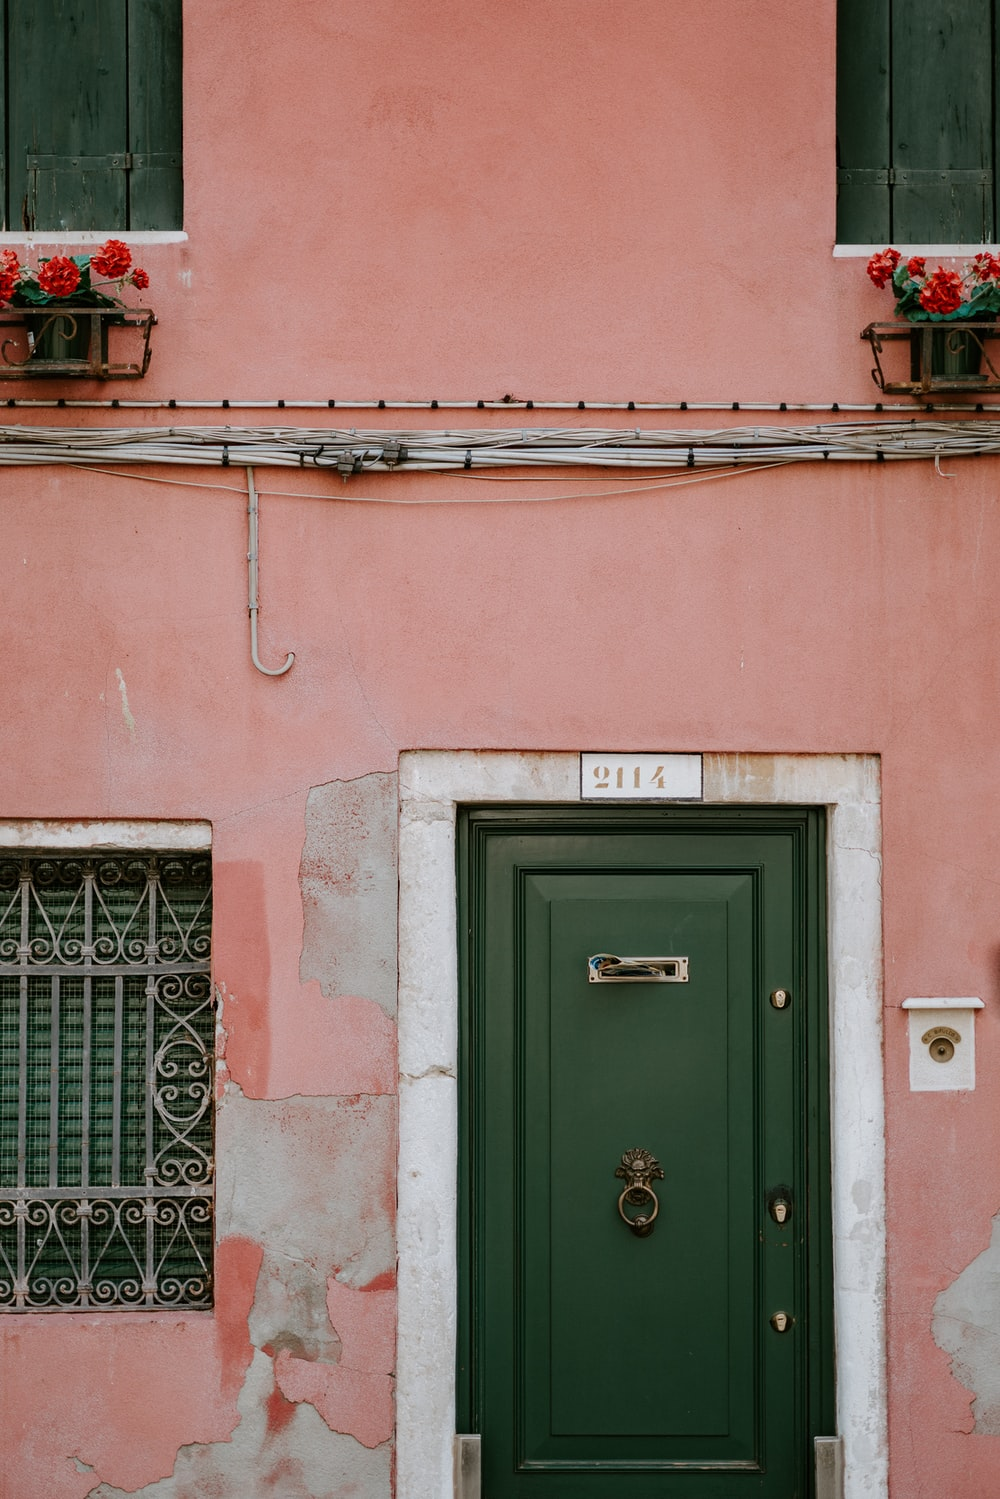 green wooden door in pink concrete building